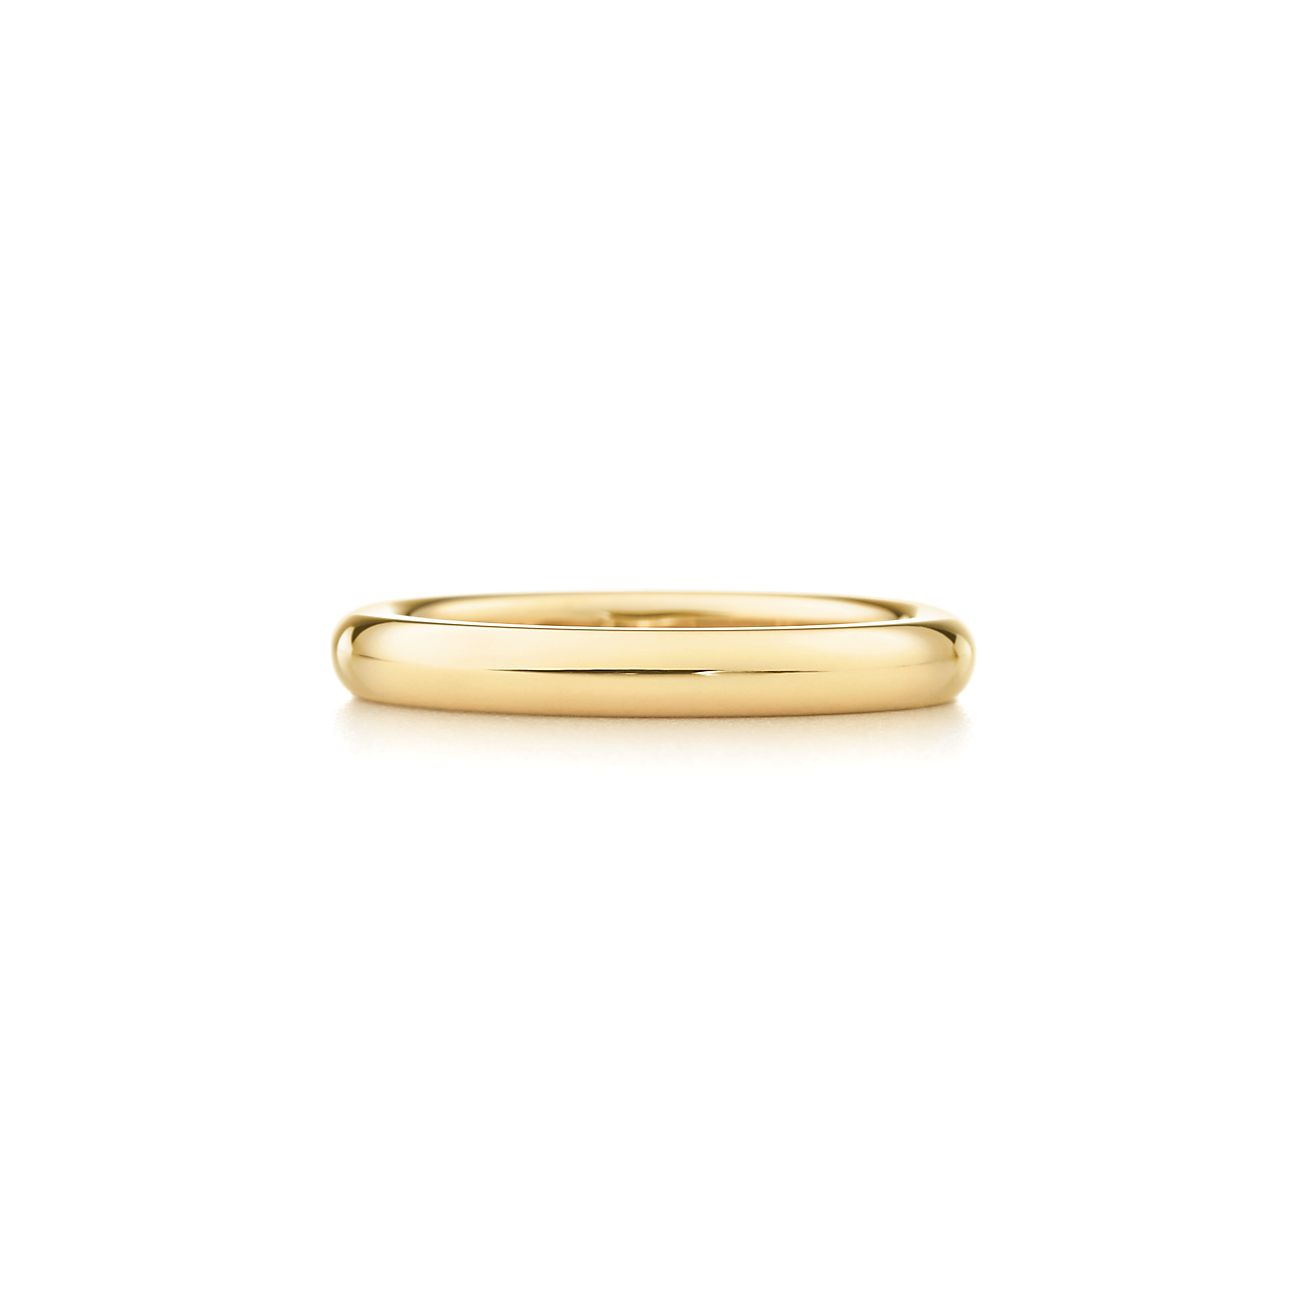 Elsa Peretti wedding band ring with yellow diamonds in 18k gold, 2 mm - Size 6 Tiffany & Co.